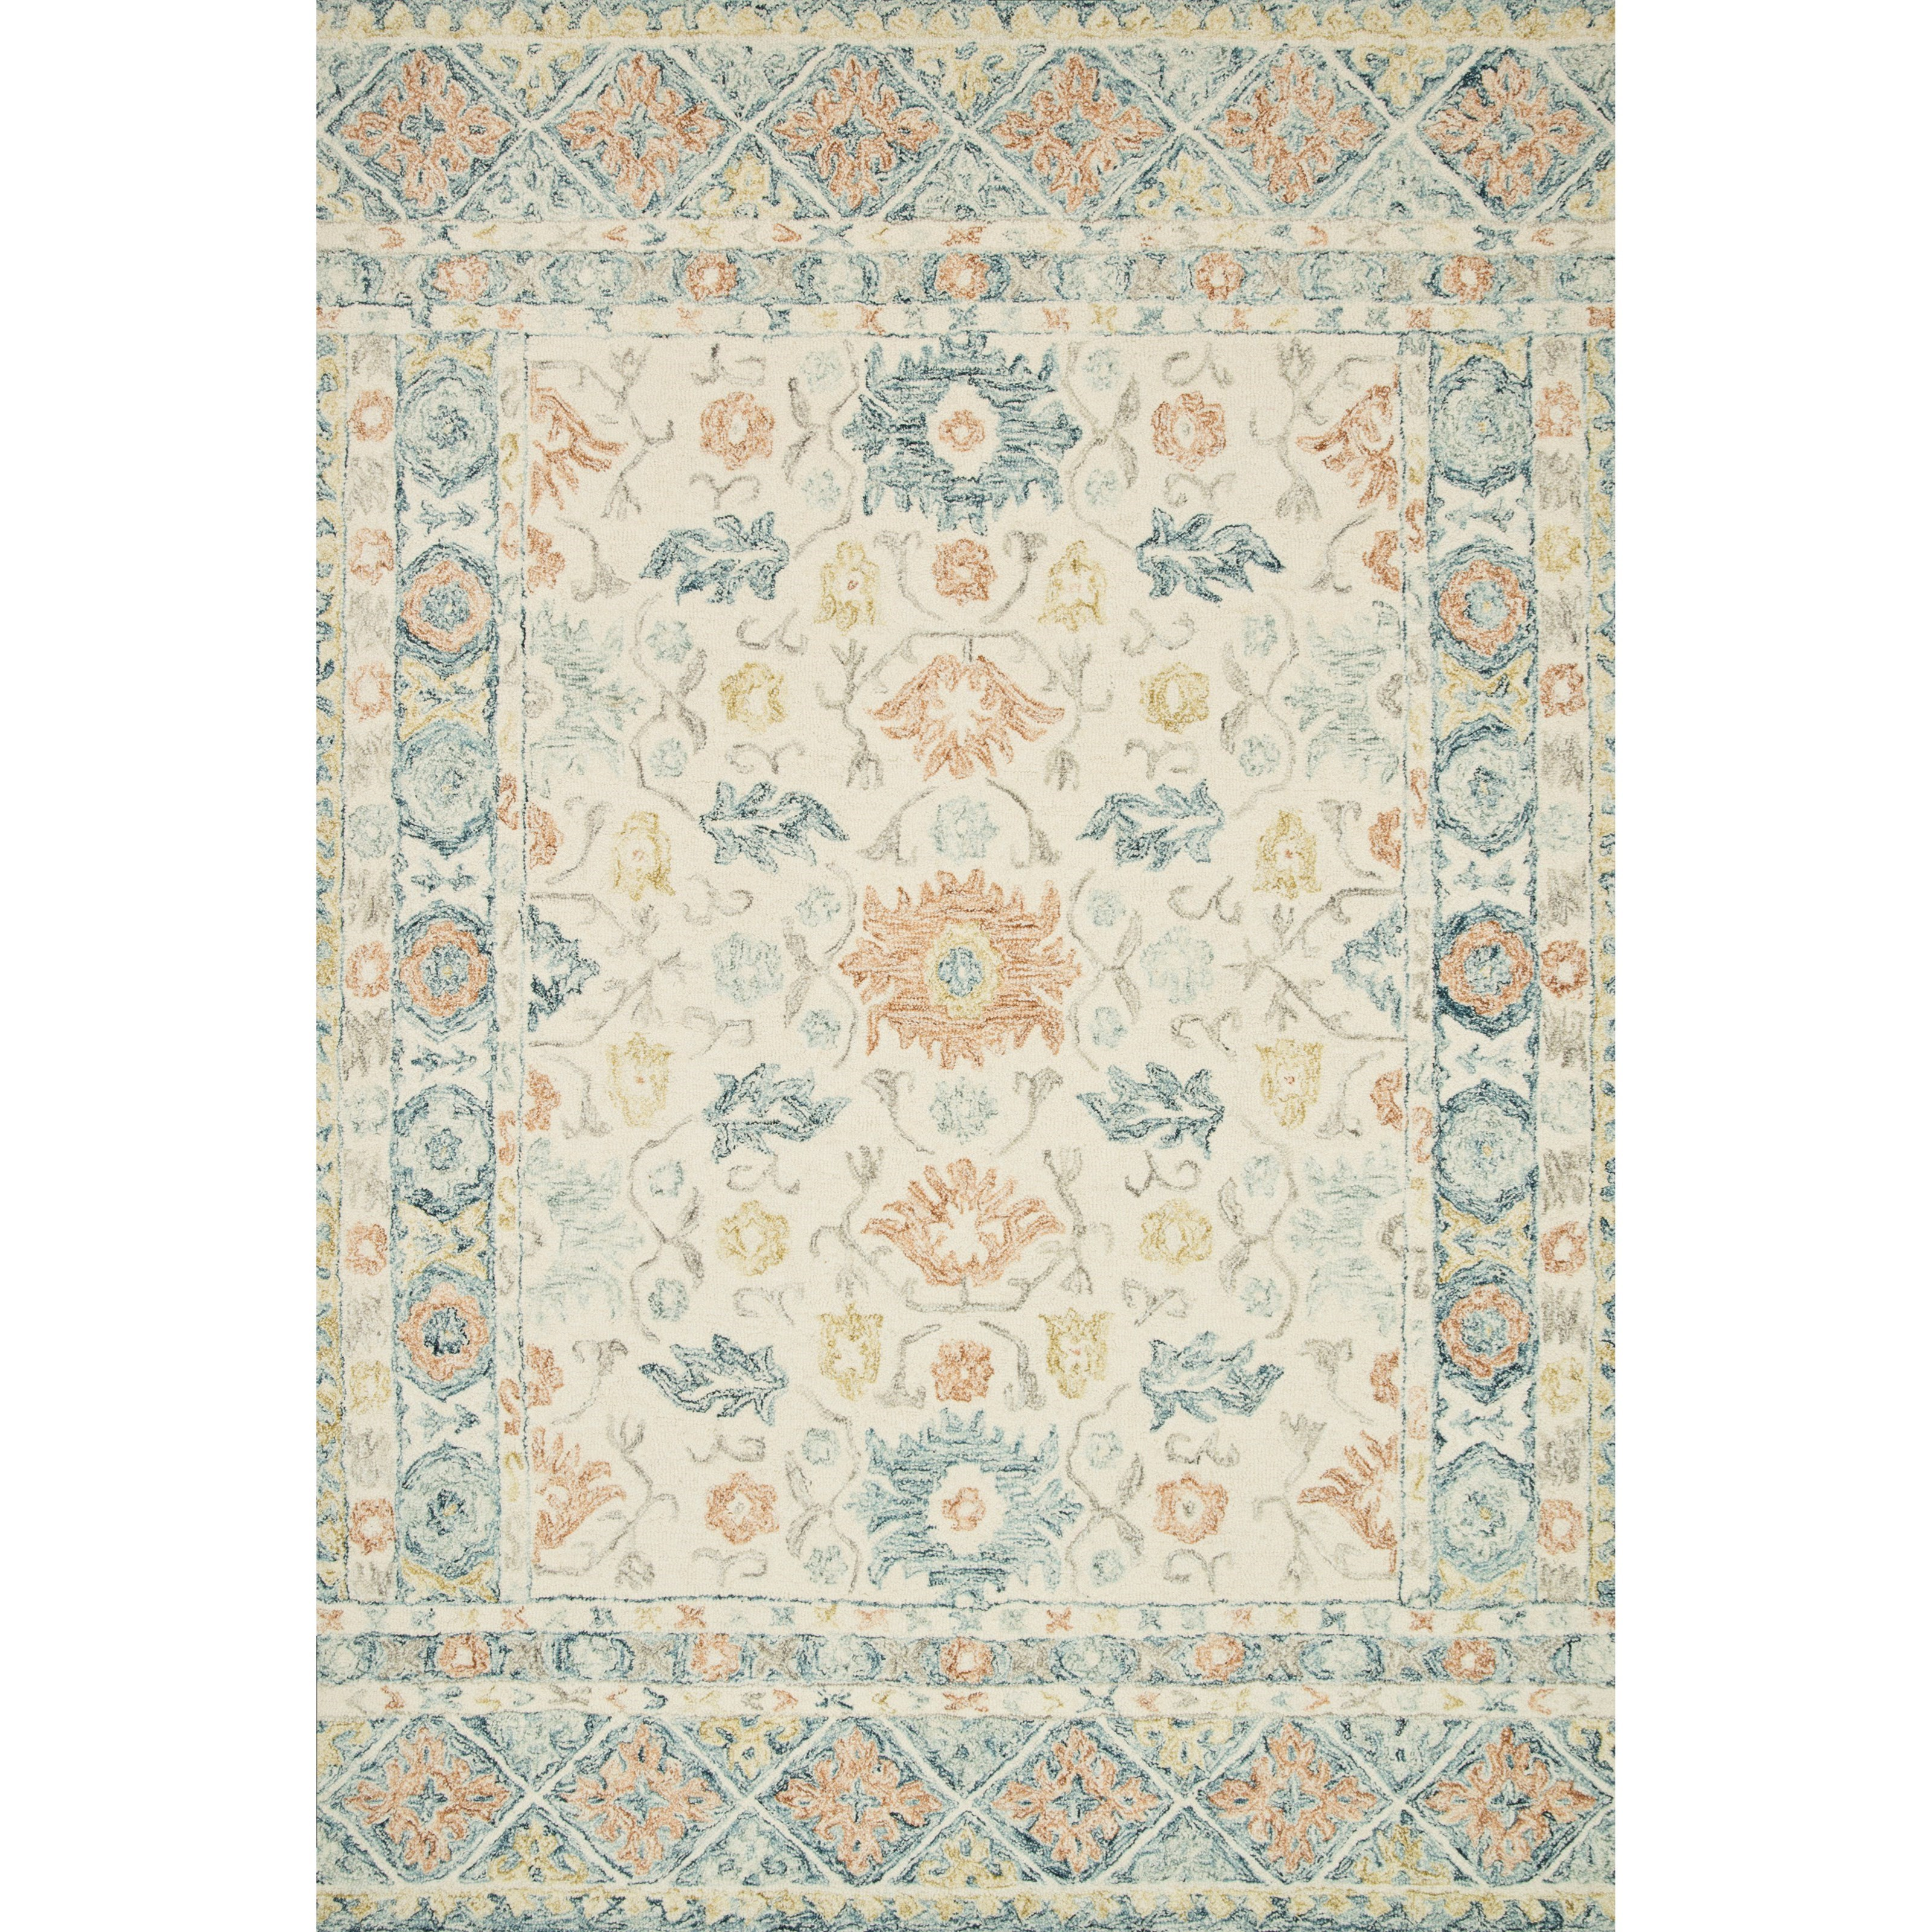 """Norabel 3'6"""" x 5'6"""" Ivory / Multi Rug by Loloi Rugs at Virginia Furniture Market"""